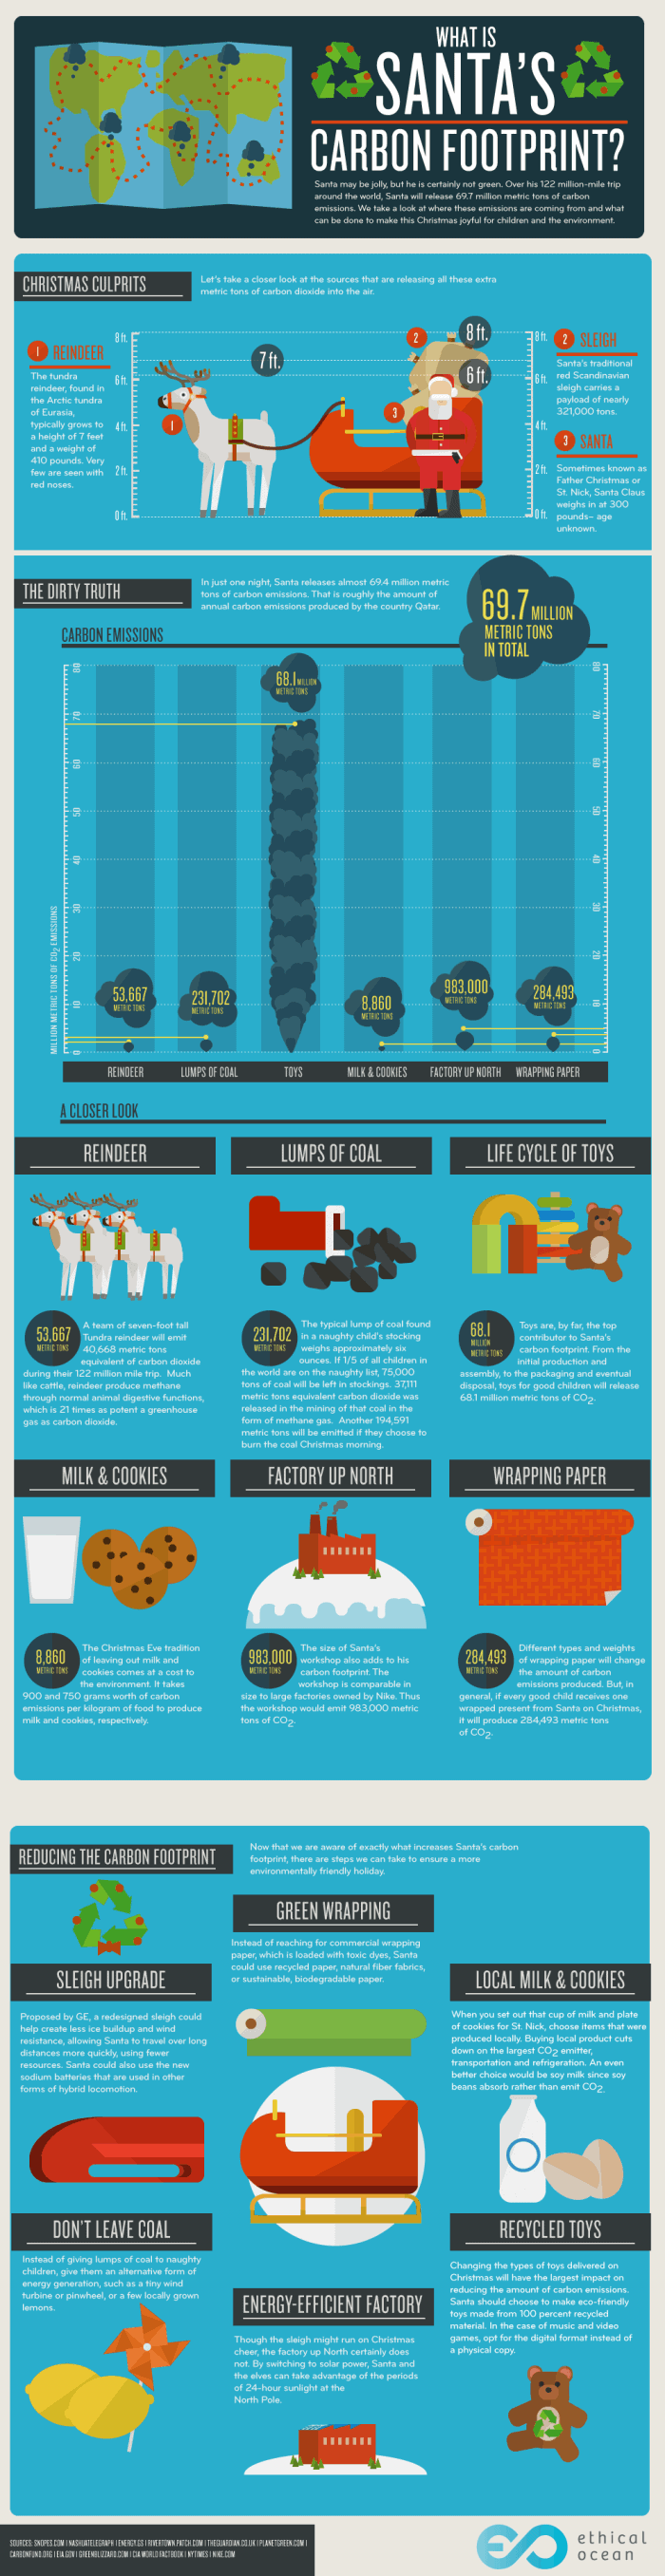 carbon-footprint-santa-infographic